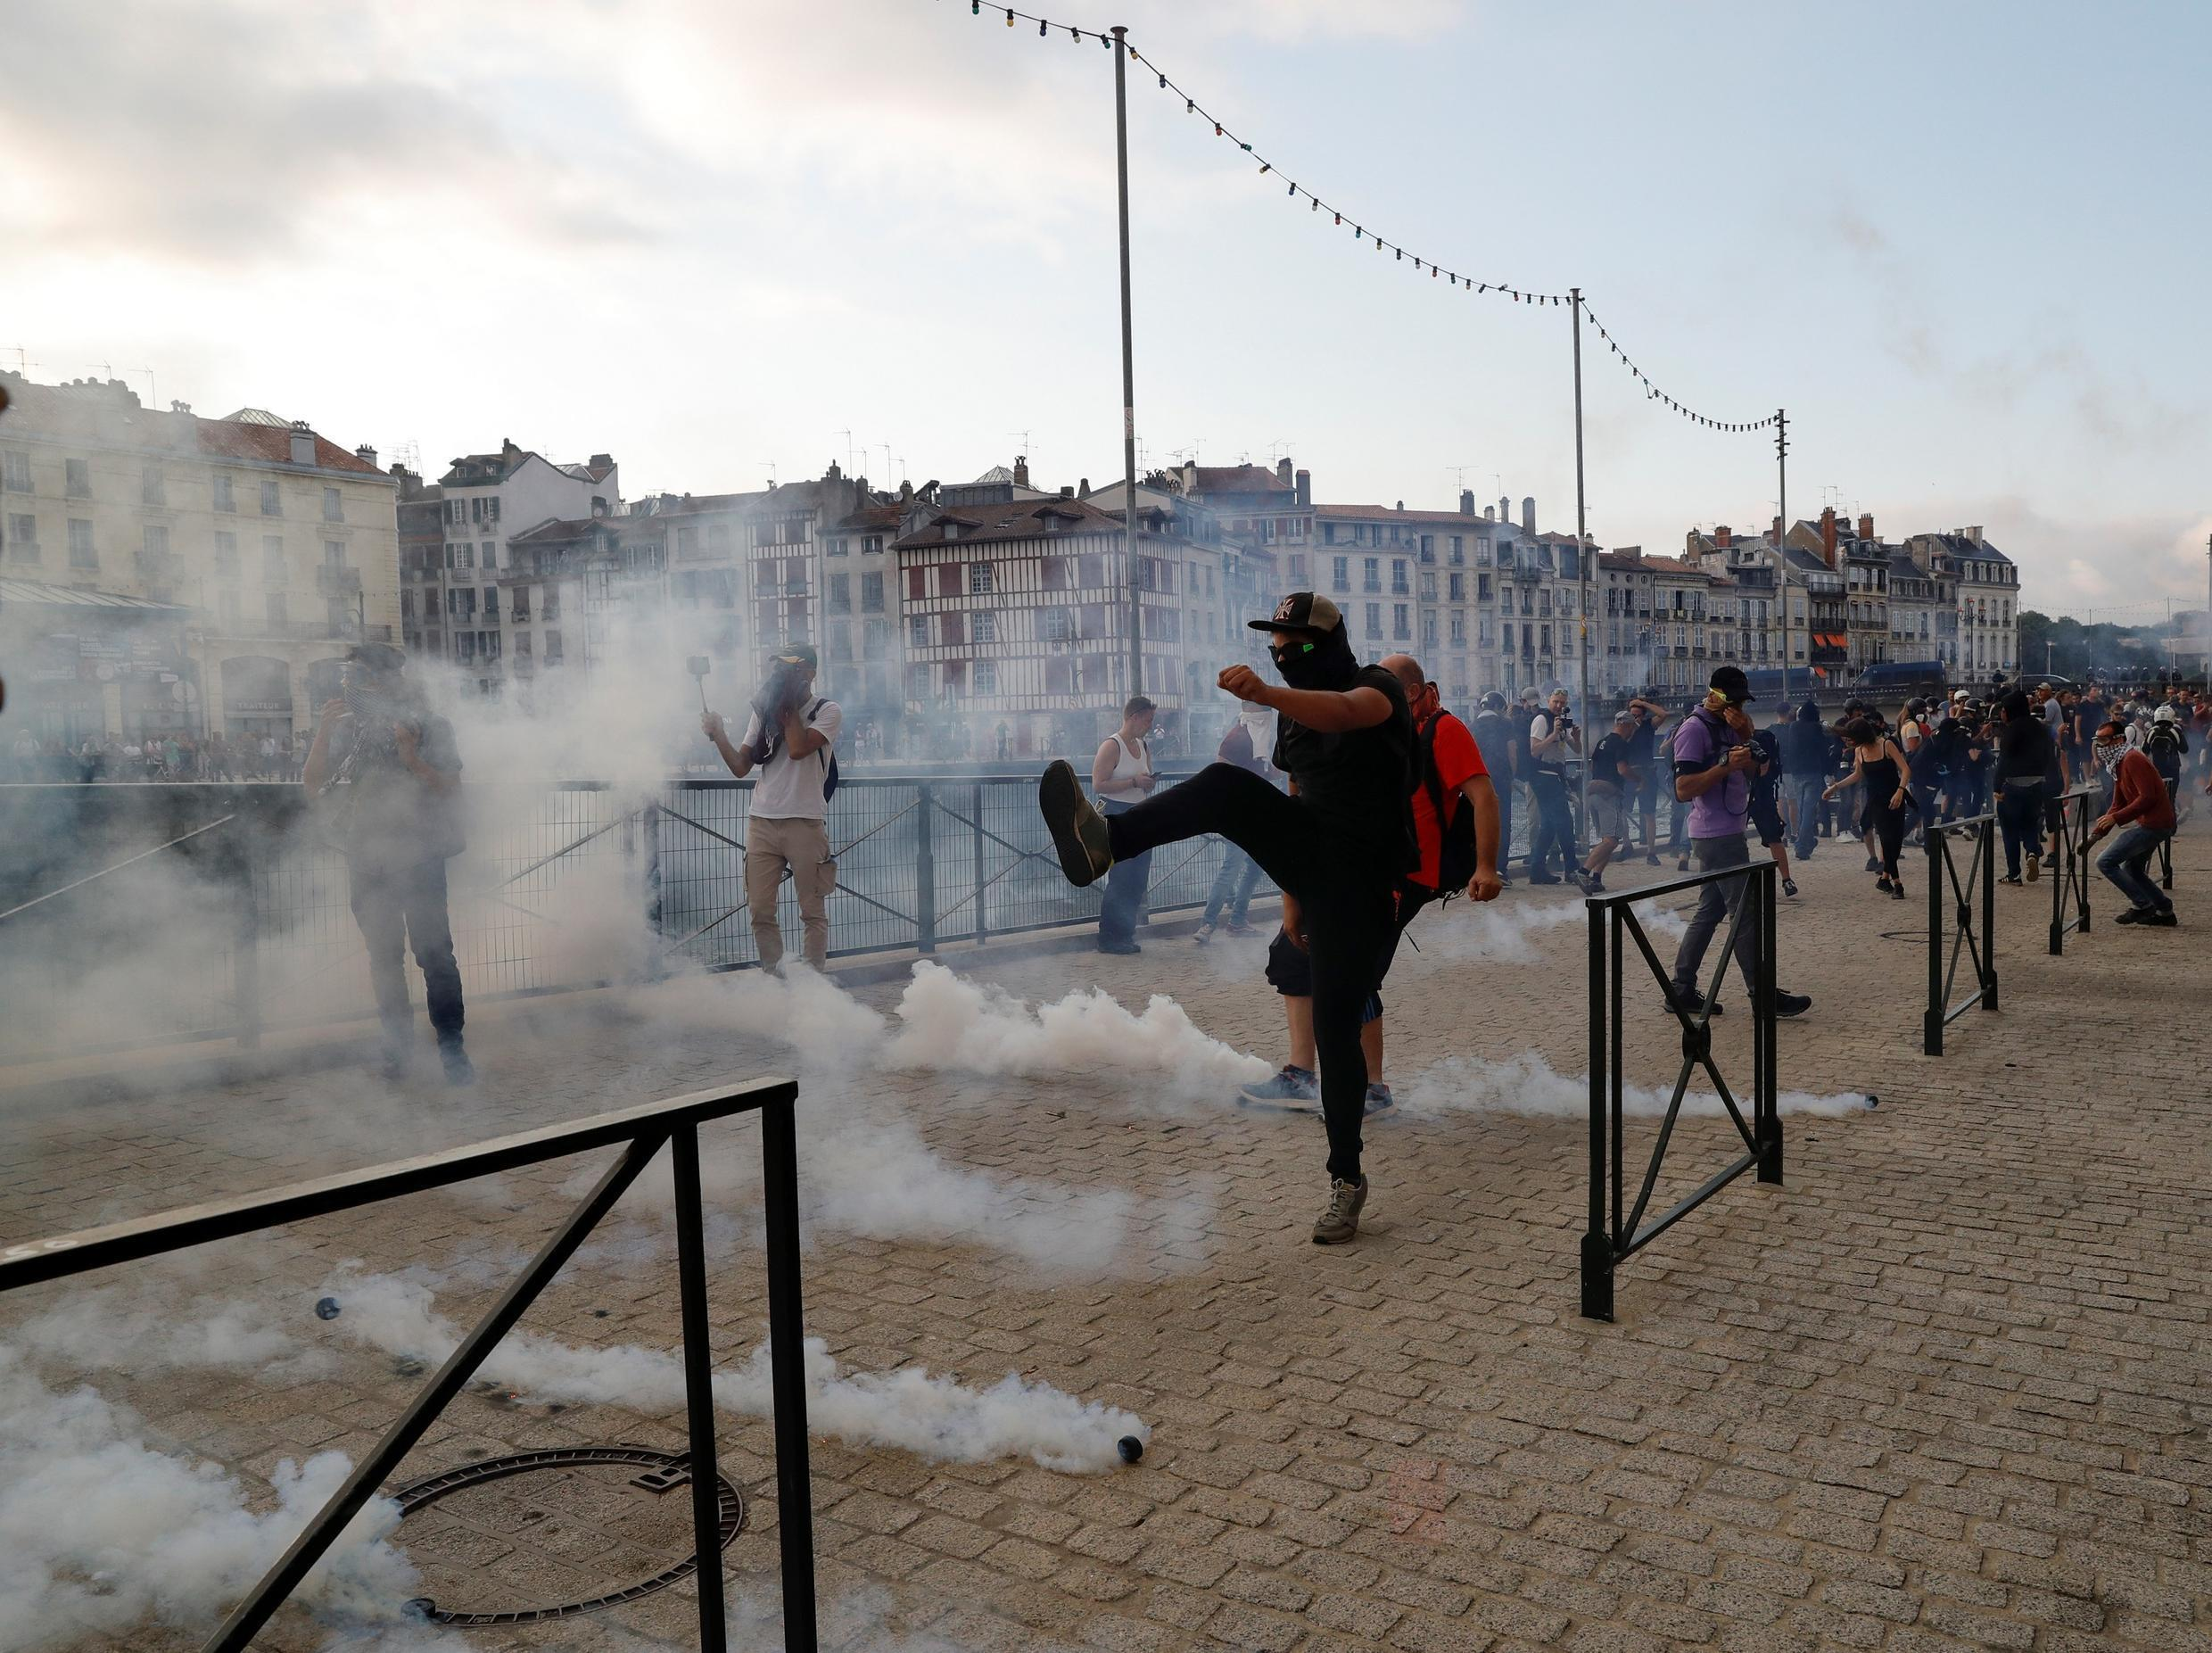 A protester kicks a tear gas grenade in Bayonne on 24 August 2019.